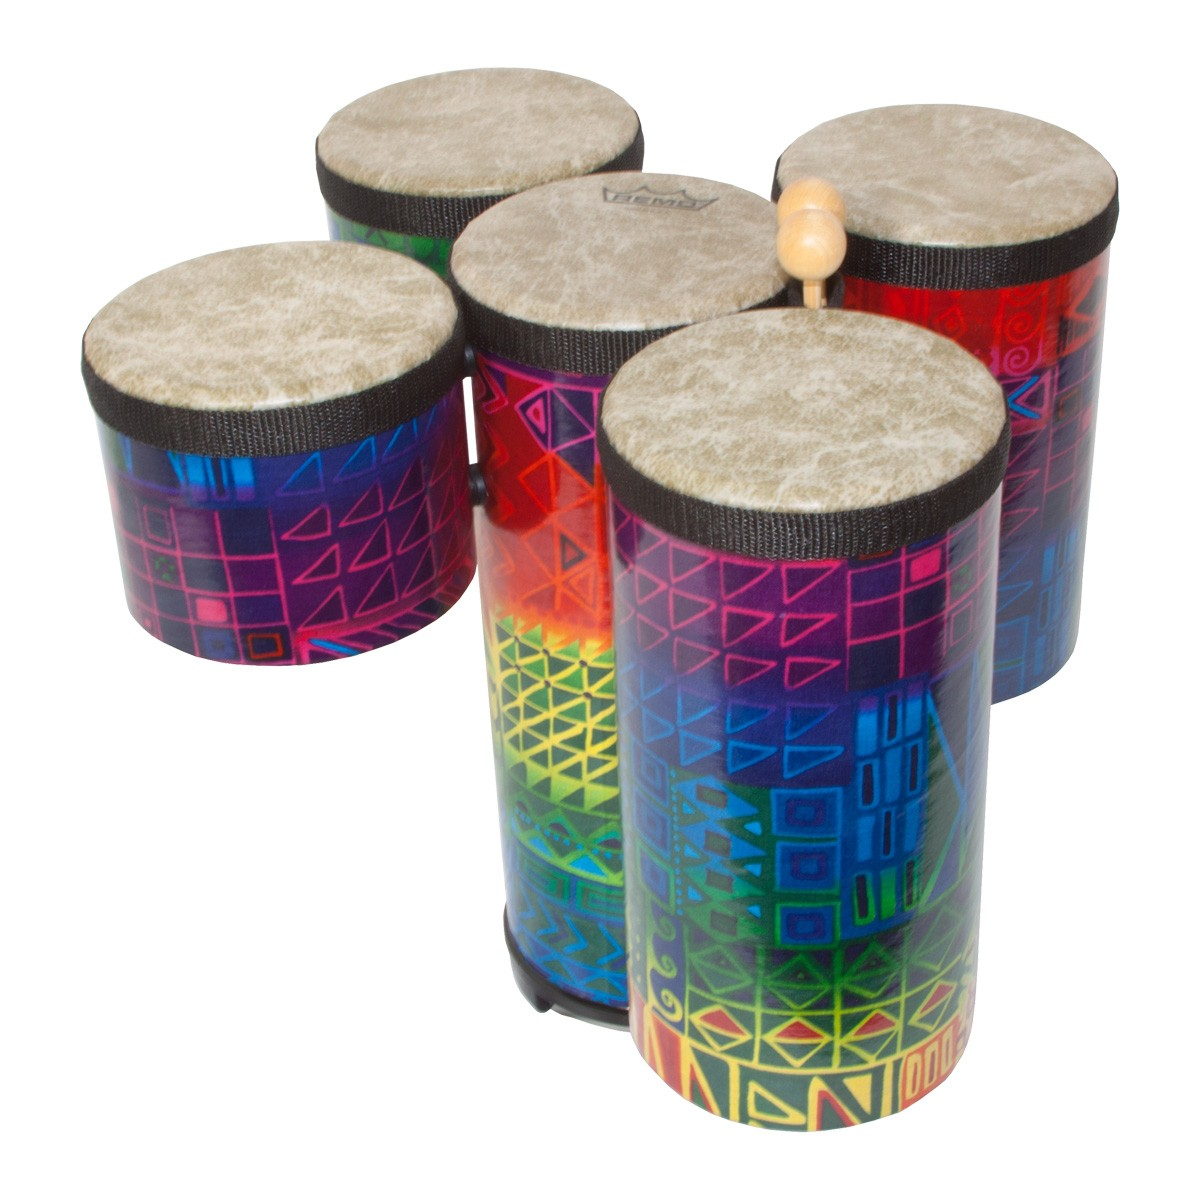 Remo Cluster Drums, Mini, 5 Piece Set, Fabric Rainbow